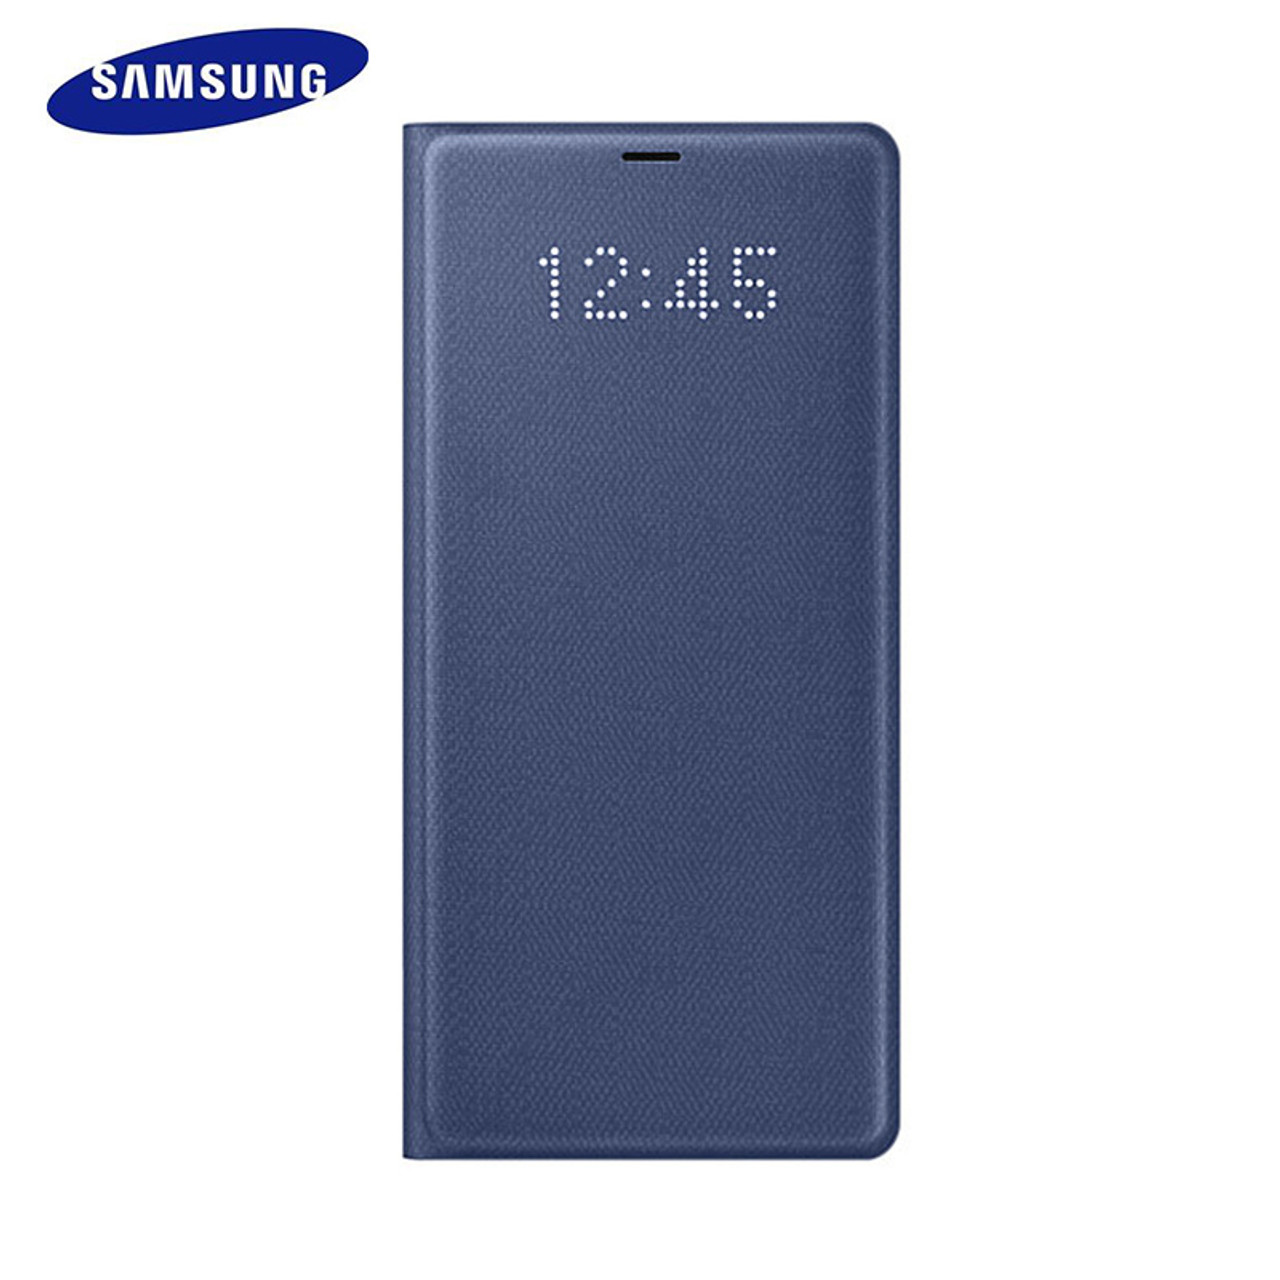 timeless design f2f2e 35d2f Samsung Galaxy Note 8 Note8 LED View Wallet Cover Original Flip Case  Shockproof Luxury Cases and Covers 360 Cute Accessories